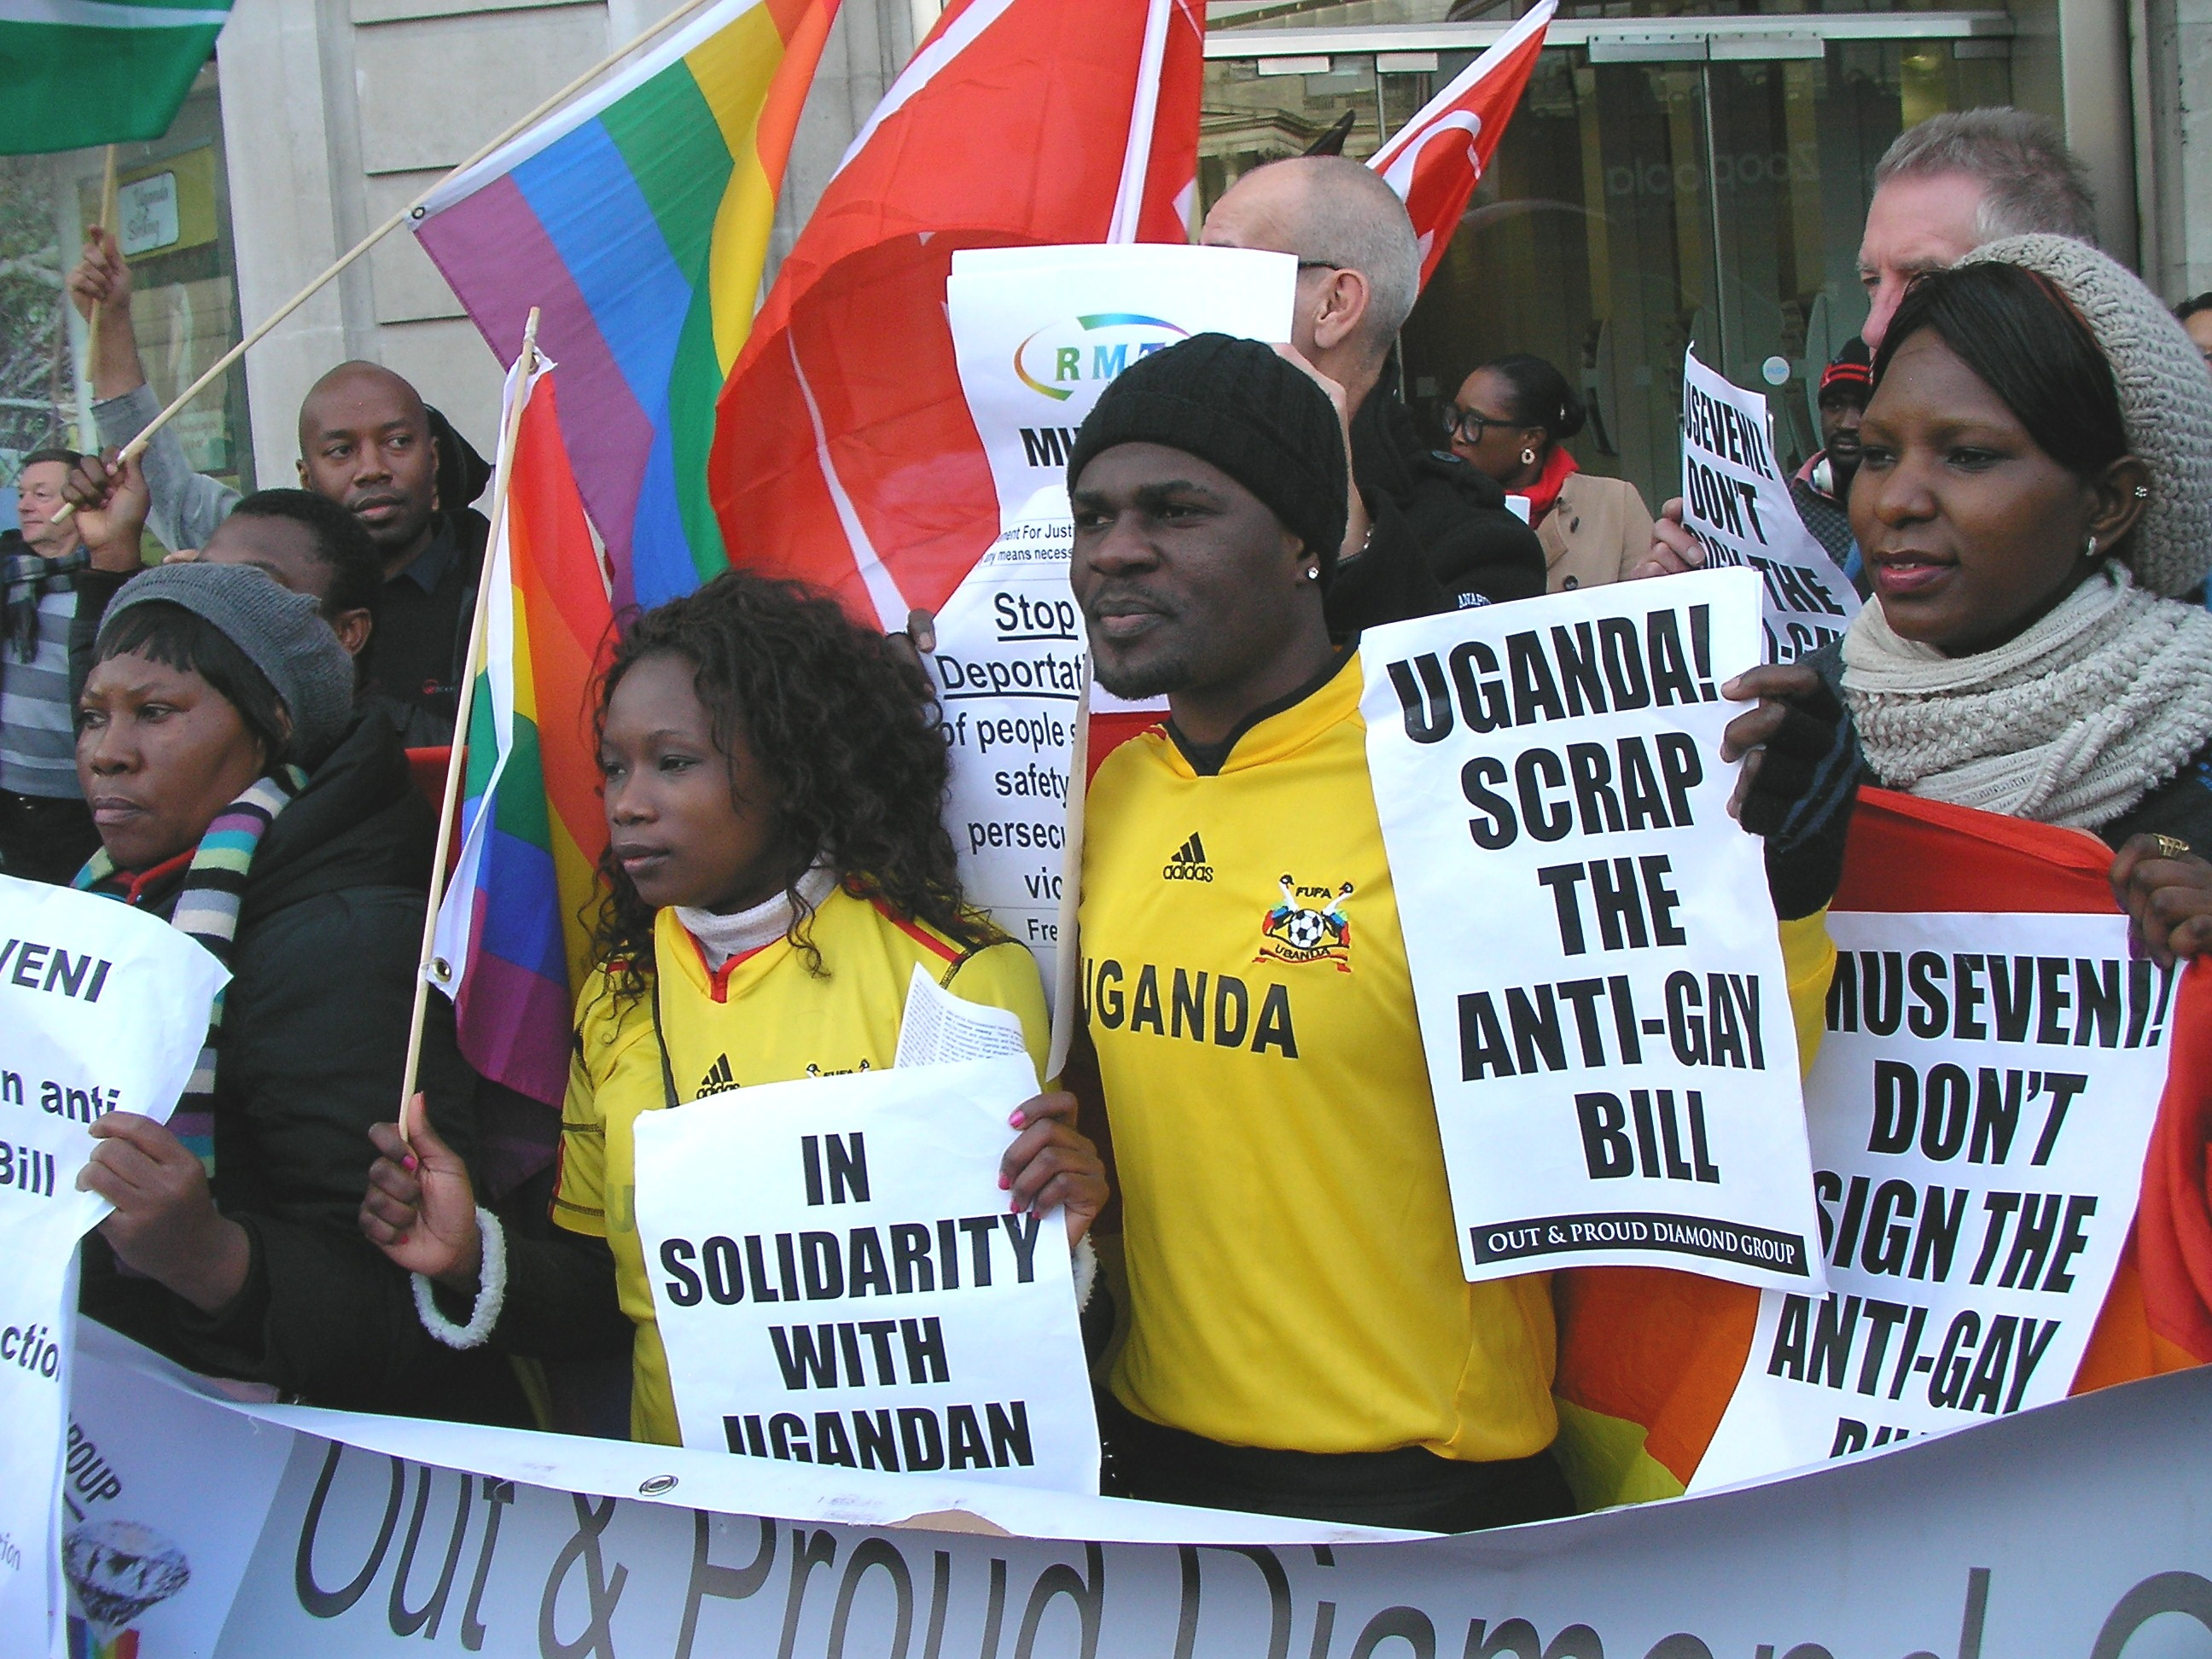 the anti homosexuality laws and bills in uganda and nigeria Anti-gay laws in nigeria and uganda provoke outrage in the us—but cameroon has quietly been locking up lgbt people for years with little international notice.